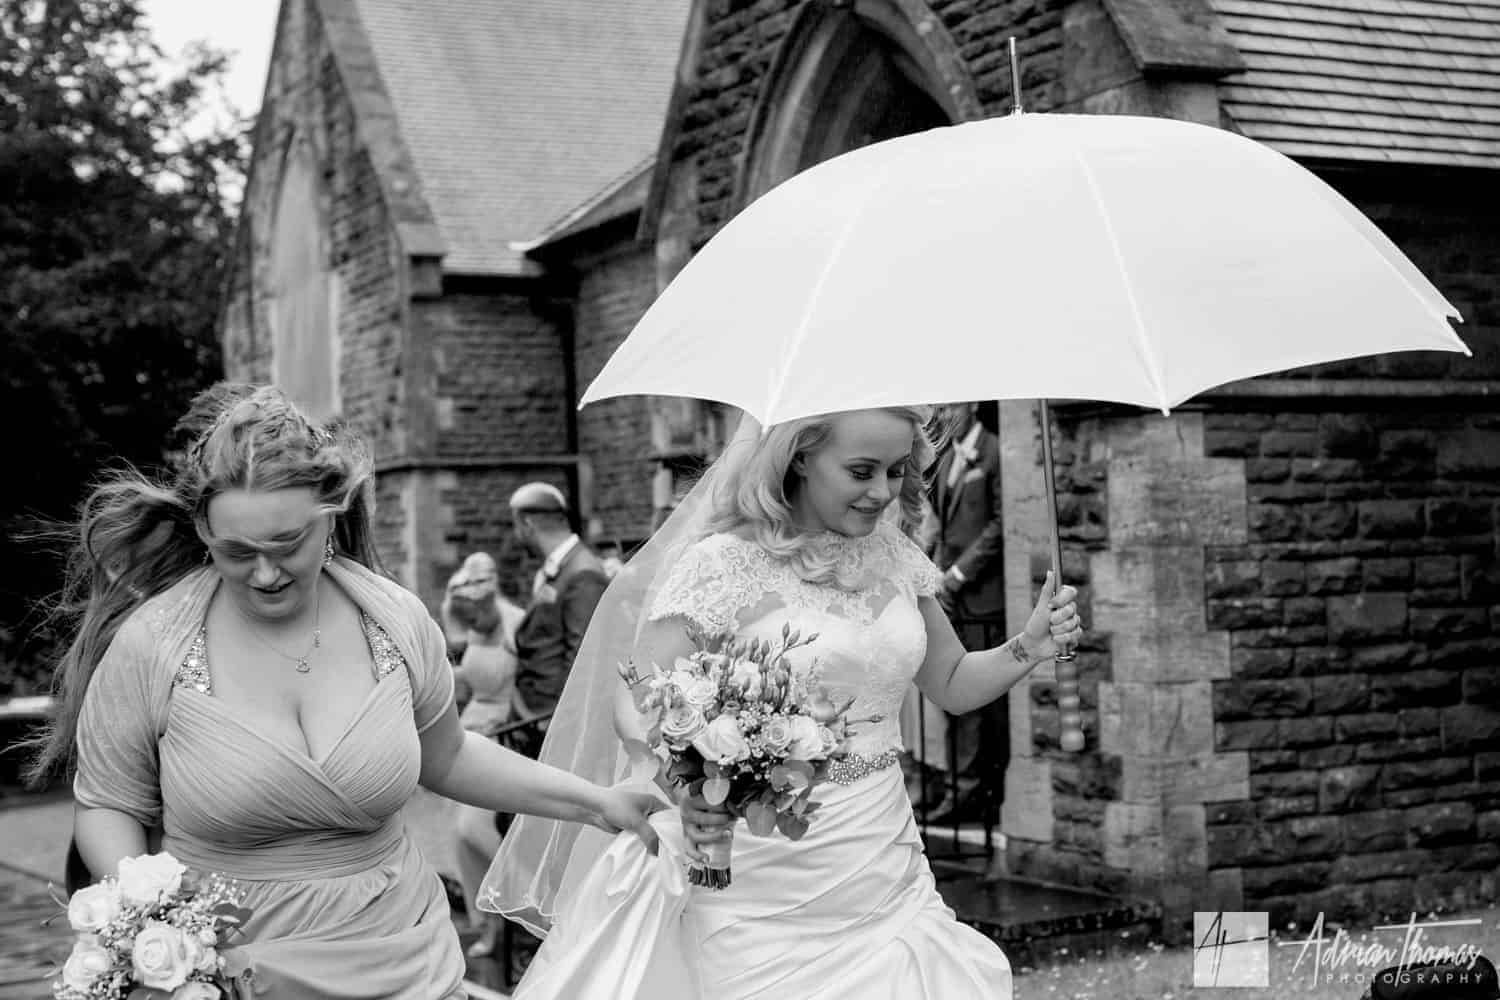 Bride with umbrella outside St Martin's Church Caerphilly wedding in rain.